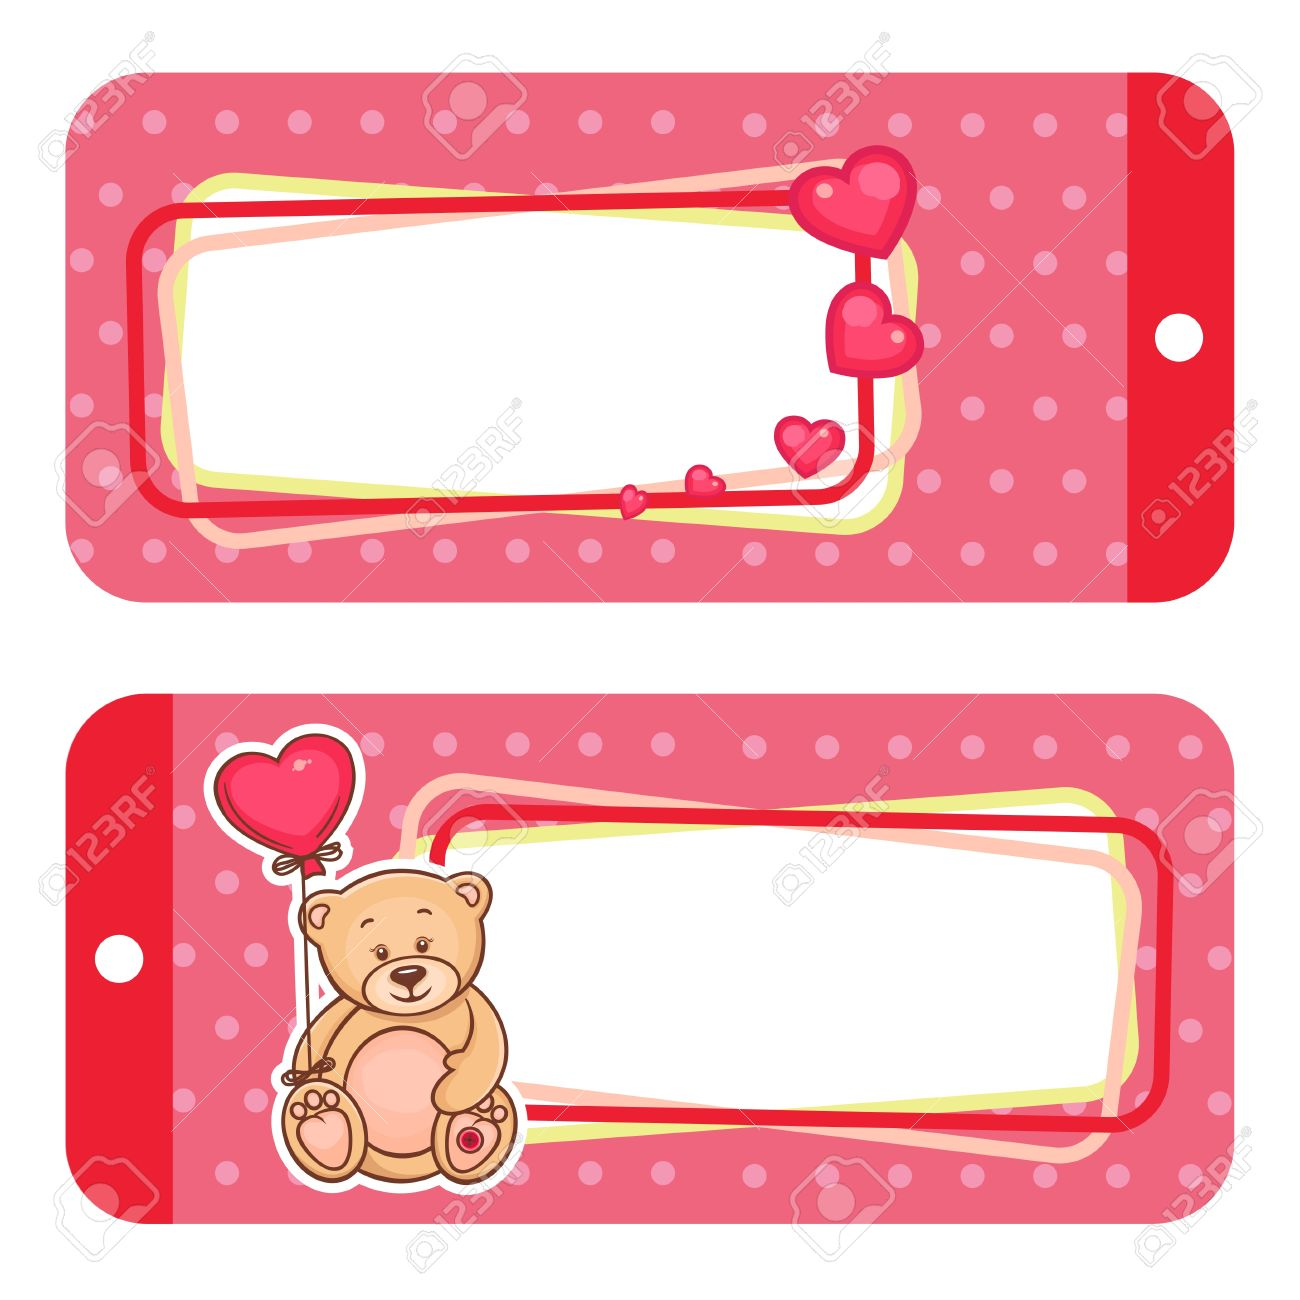 Valentine Gift Tags With Cute Valentine Teddy Bear Royalty Free